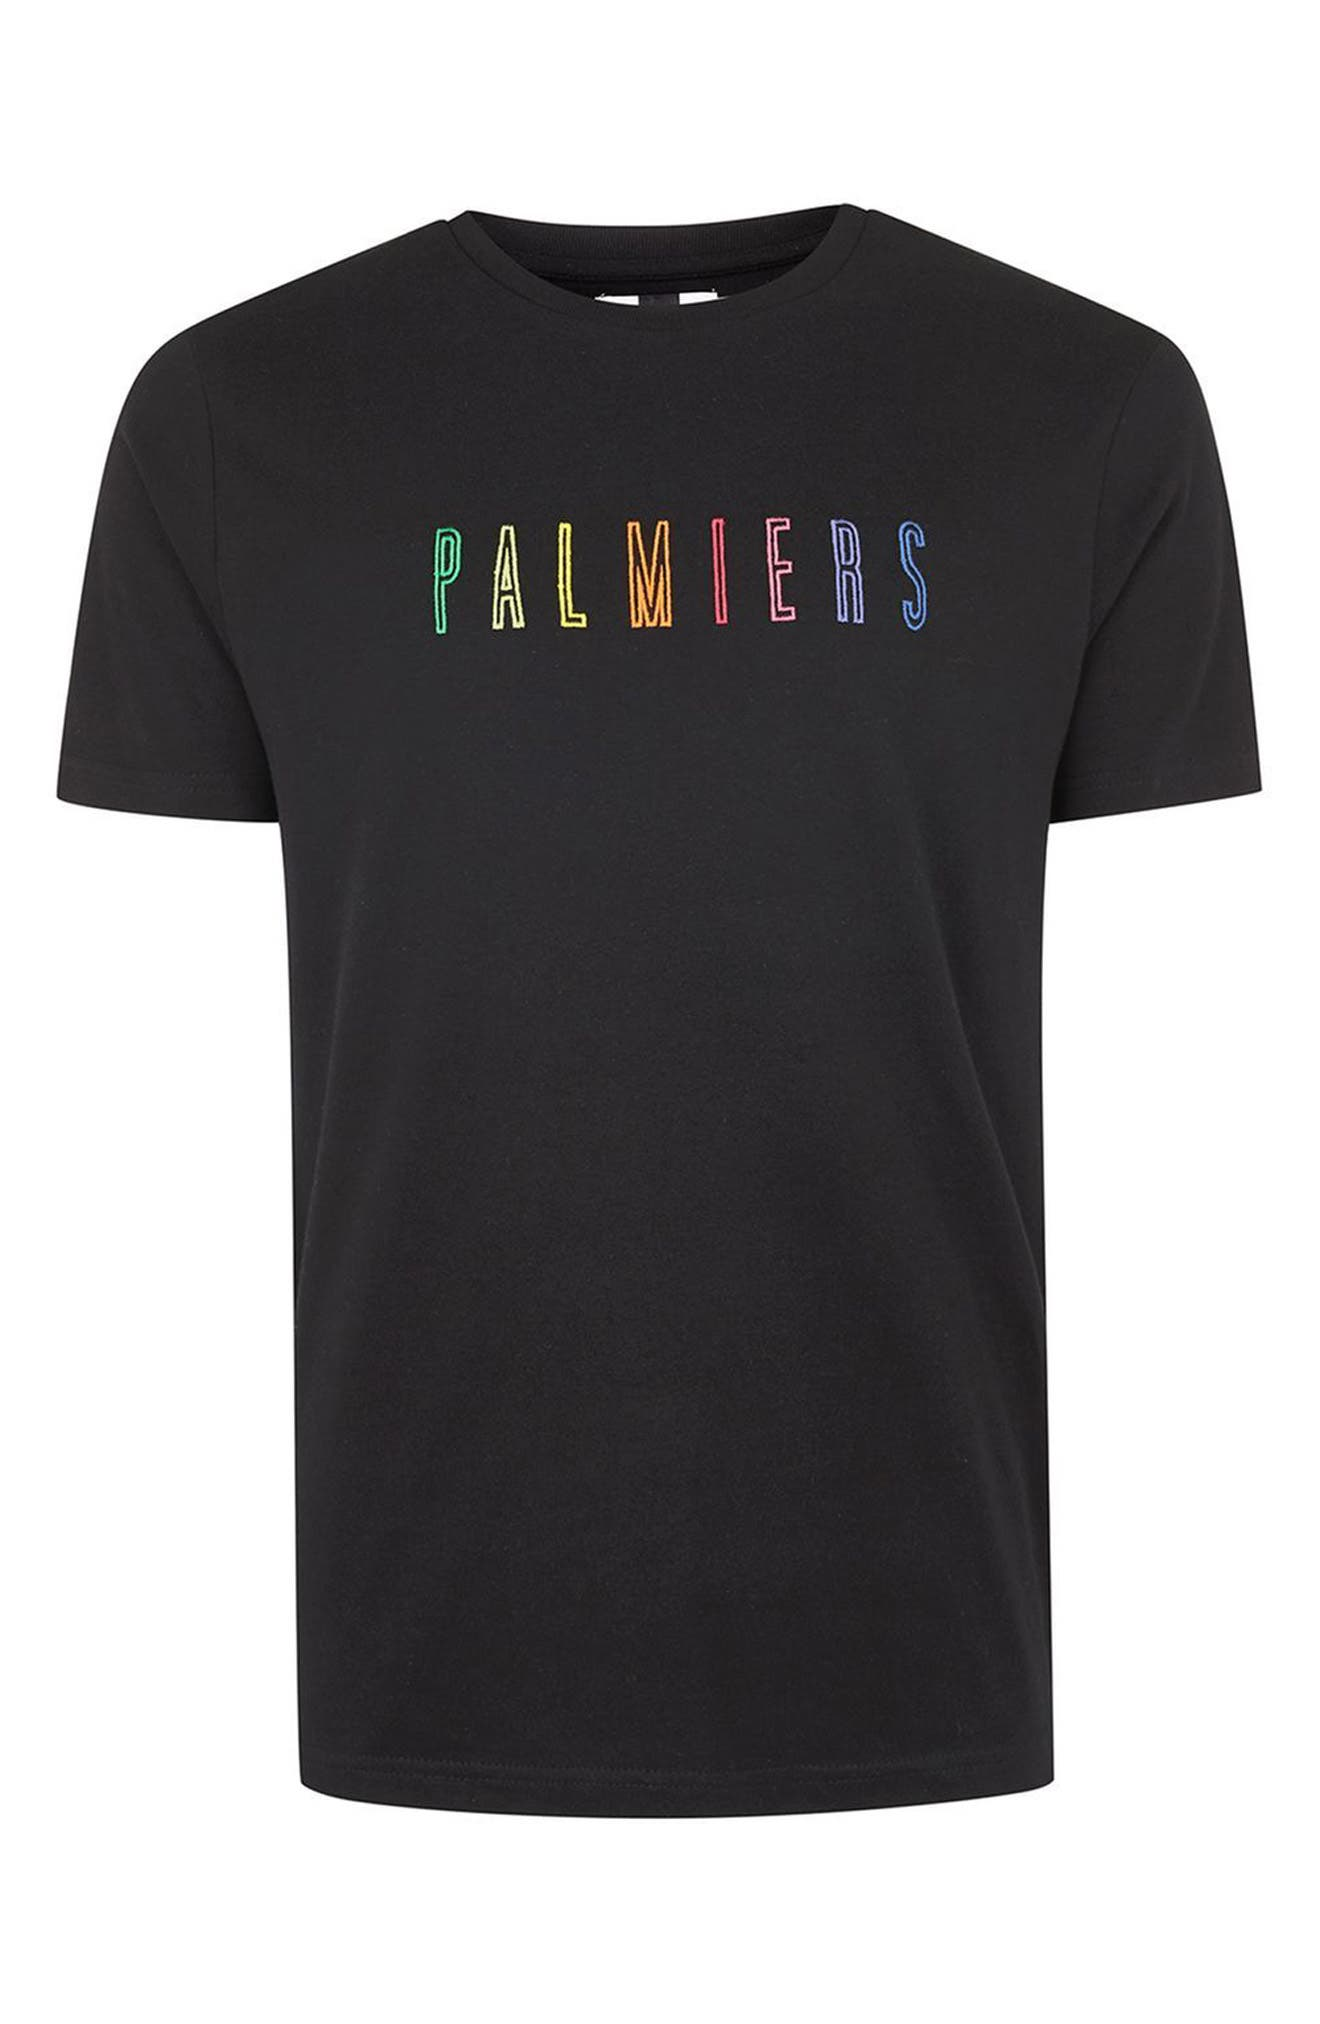 Palmiers Embroidered T-Shirt,                             Alternate thumbnail 4, color,